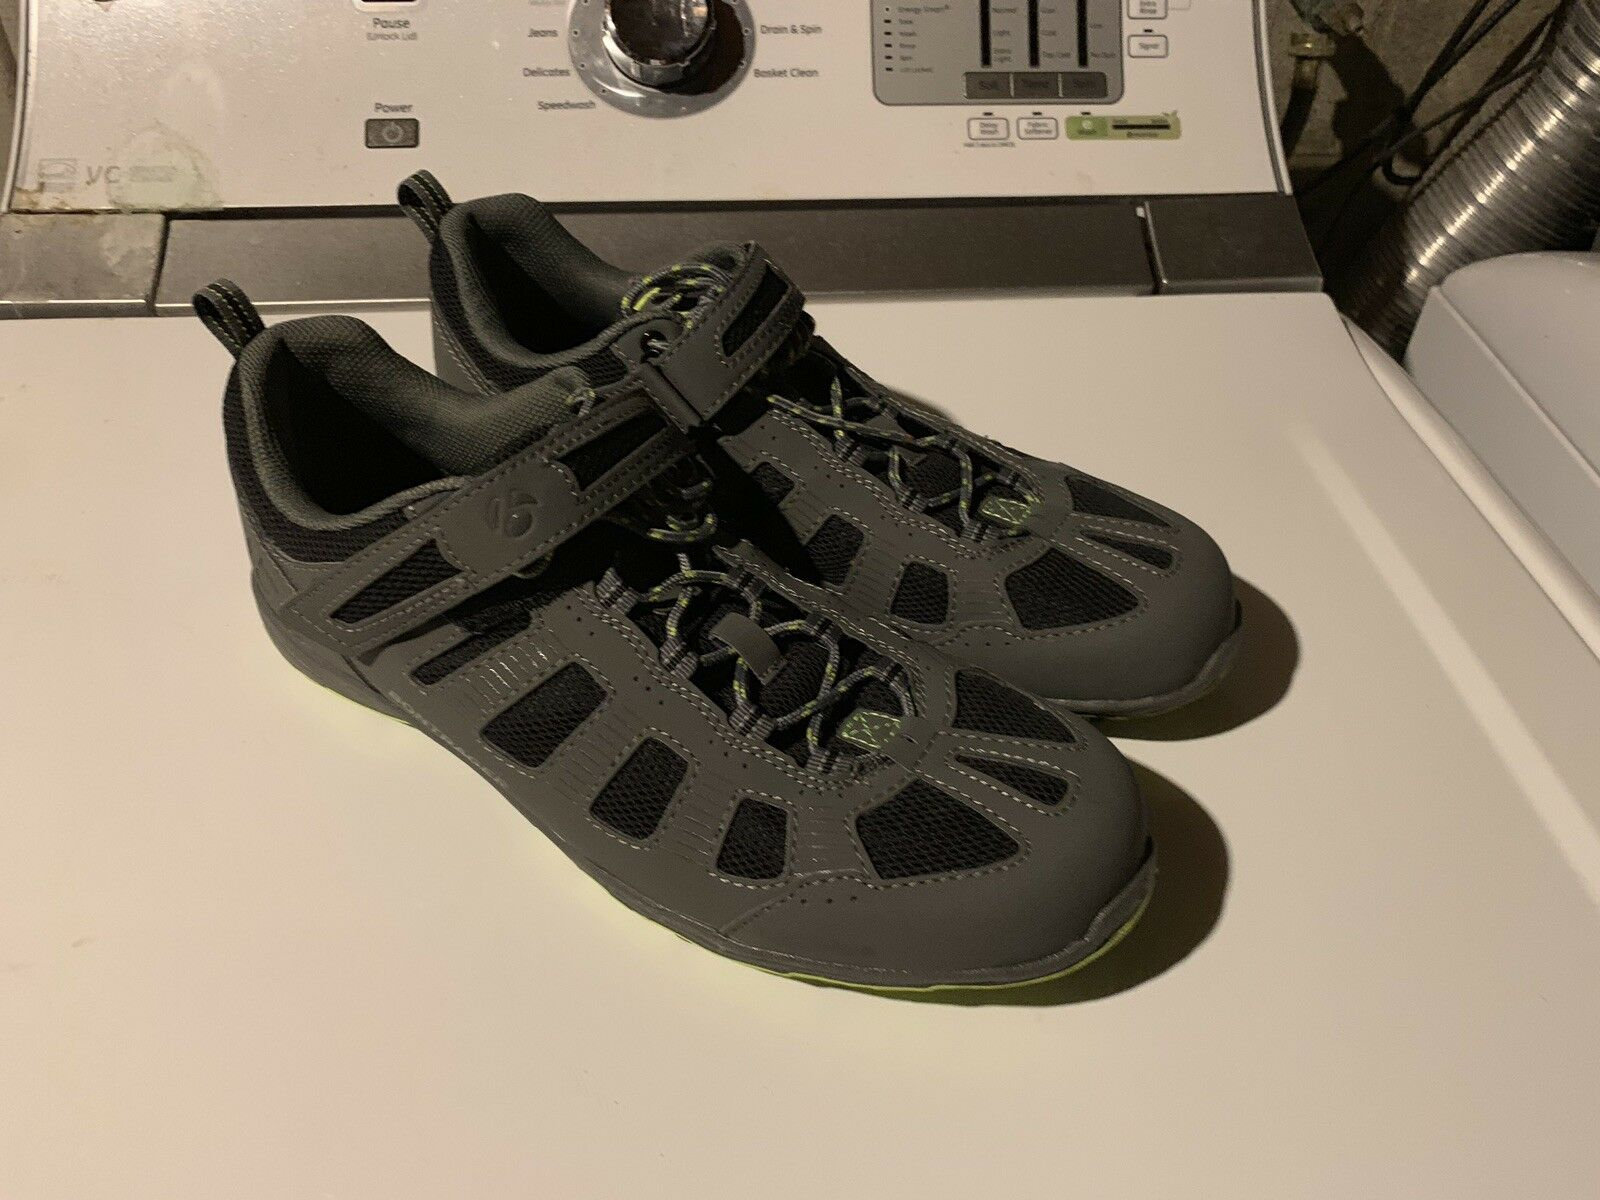 Bontrager cycling shoes And Wellgo Spd Pedals